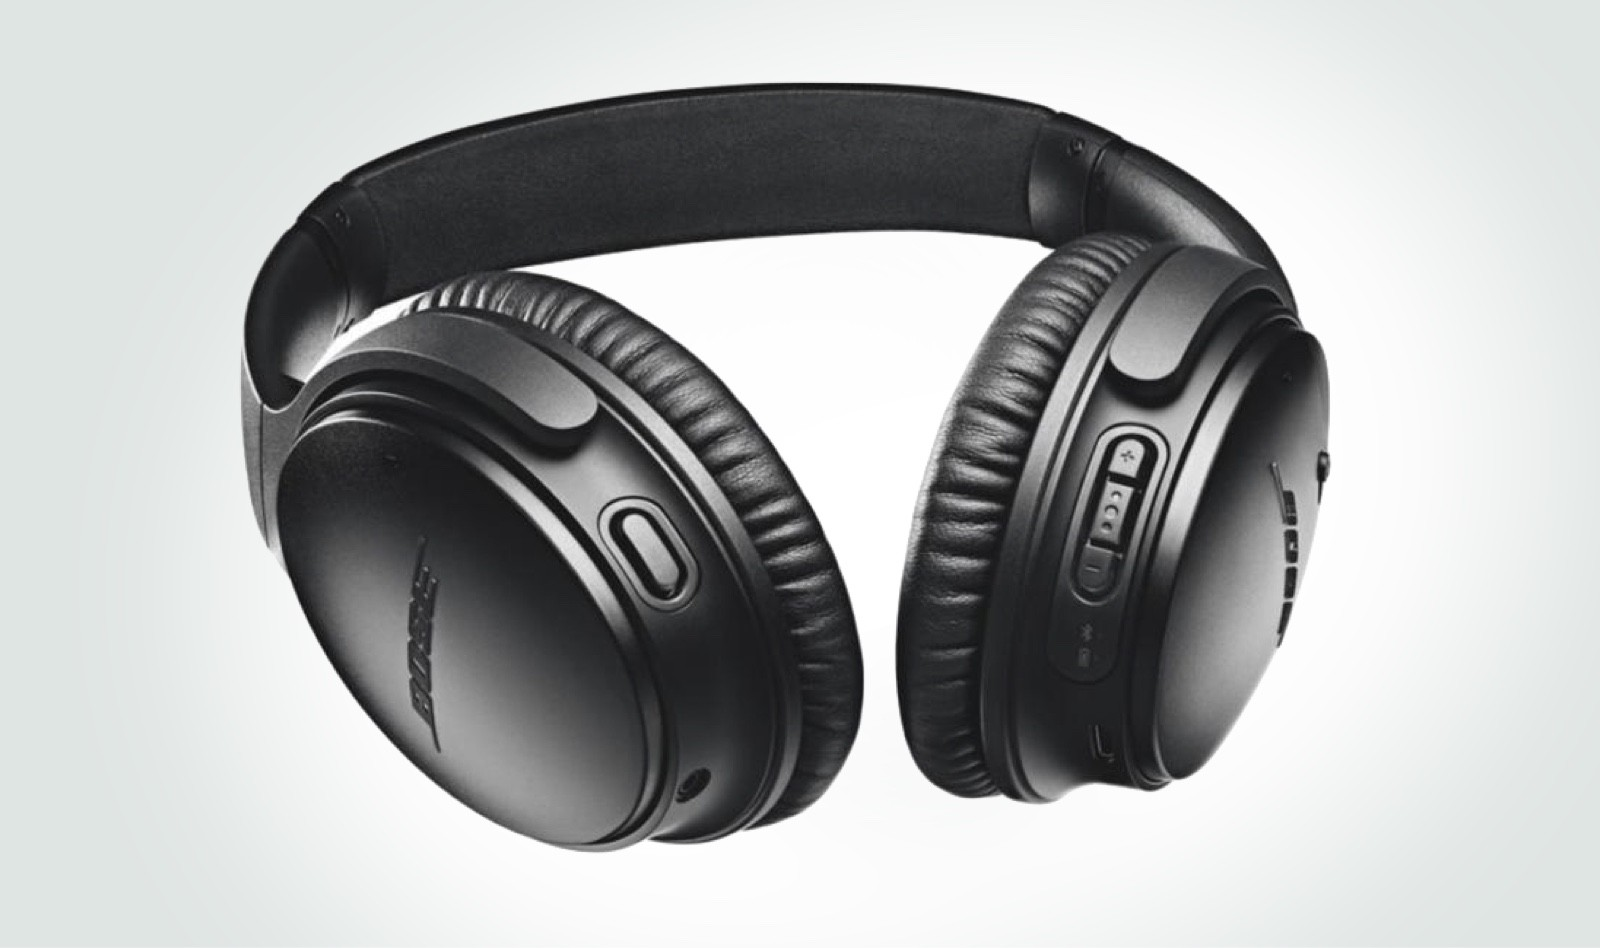 Bose QuietComfort 35 II: Upgraded with built-in Google